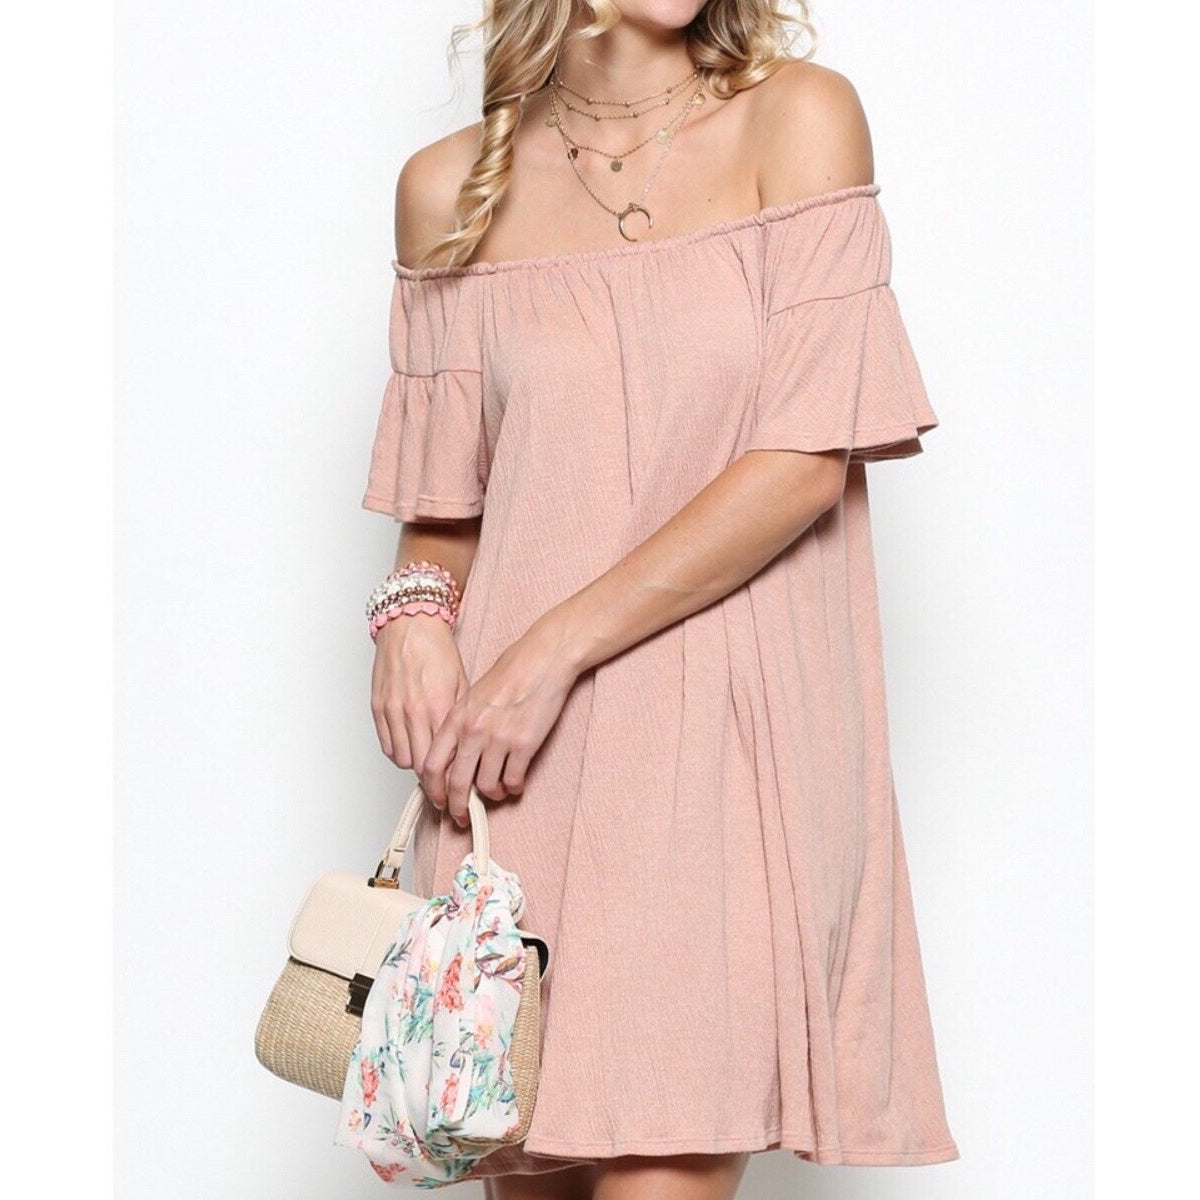 SALE ! Taylor Off The Shoulder Dress - Glamco Boutique